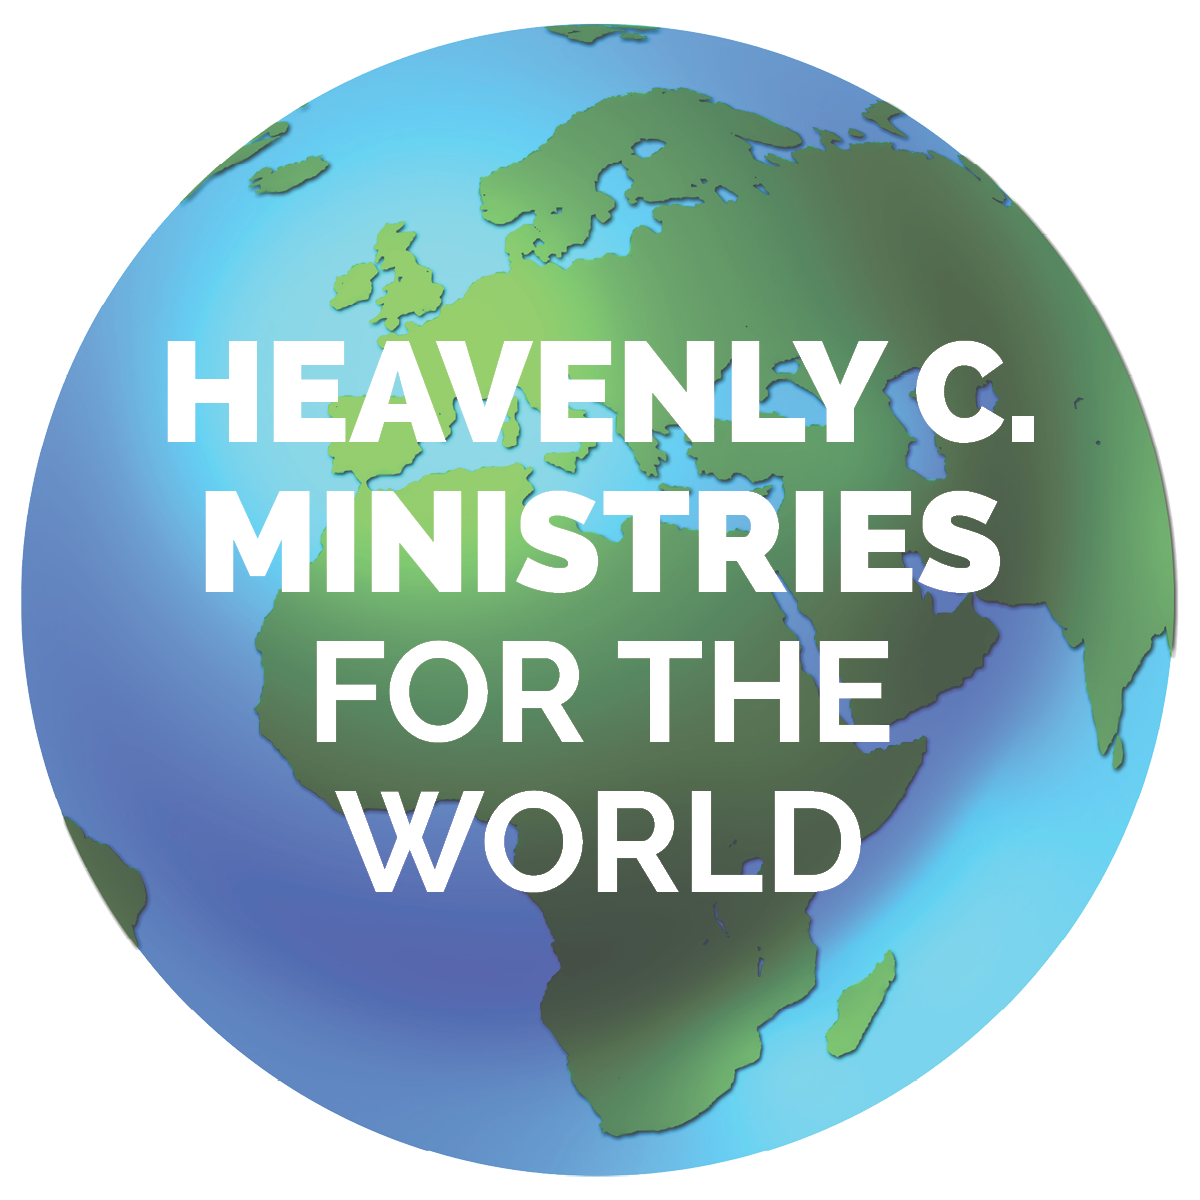 Heavenly C. Ministries for the World